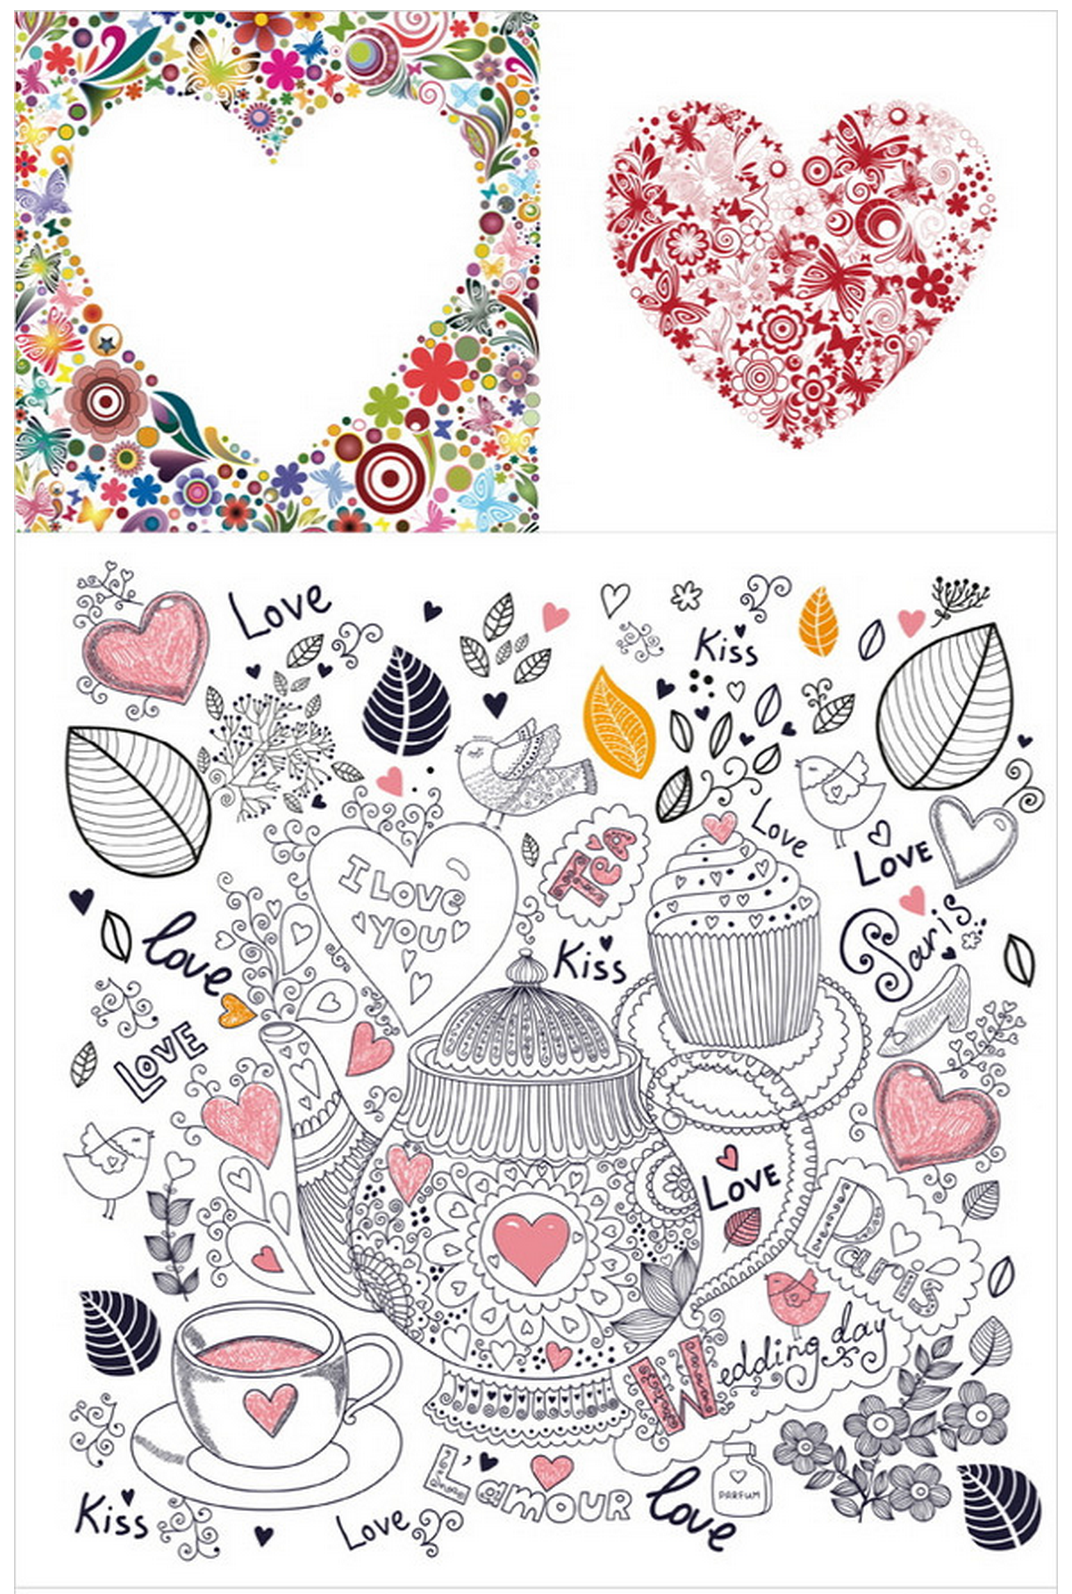 Hey Eonni On Twitter Colouring Cafe Anti Stress Theme Book Tco BOWernvlNo 9JGVMtAhZN